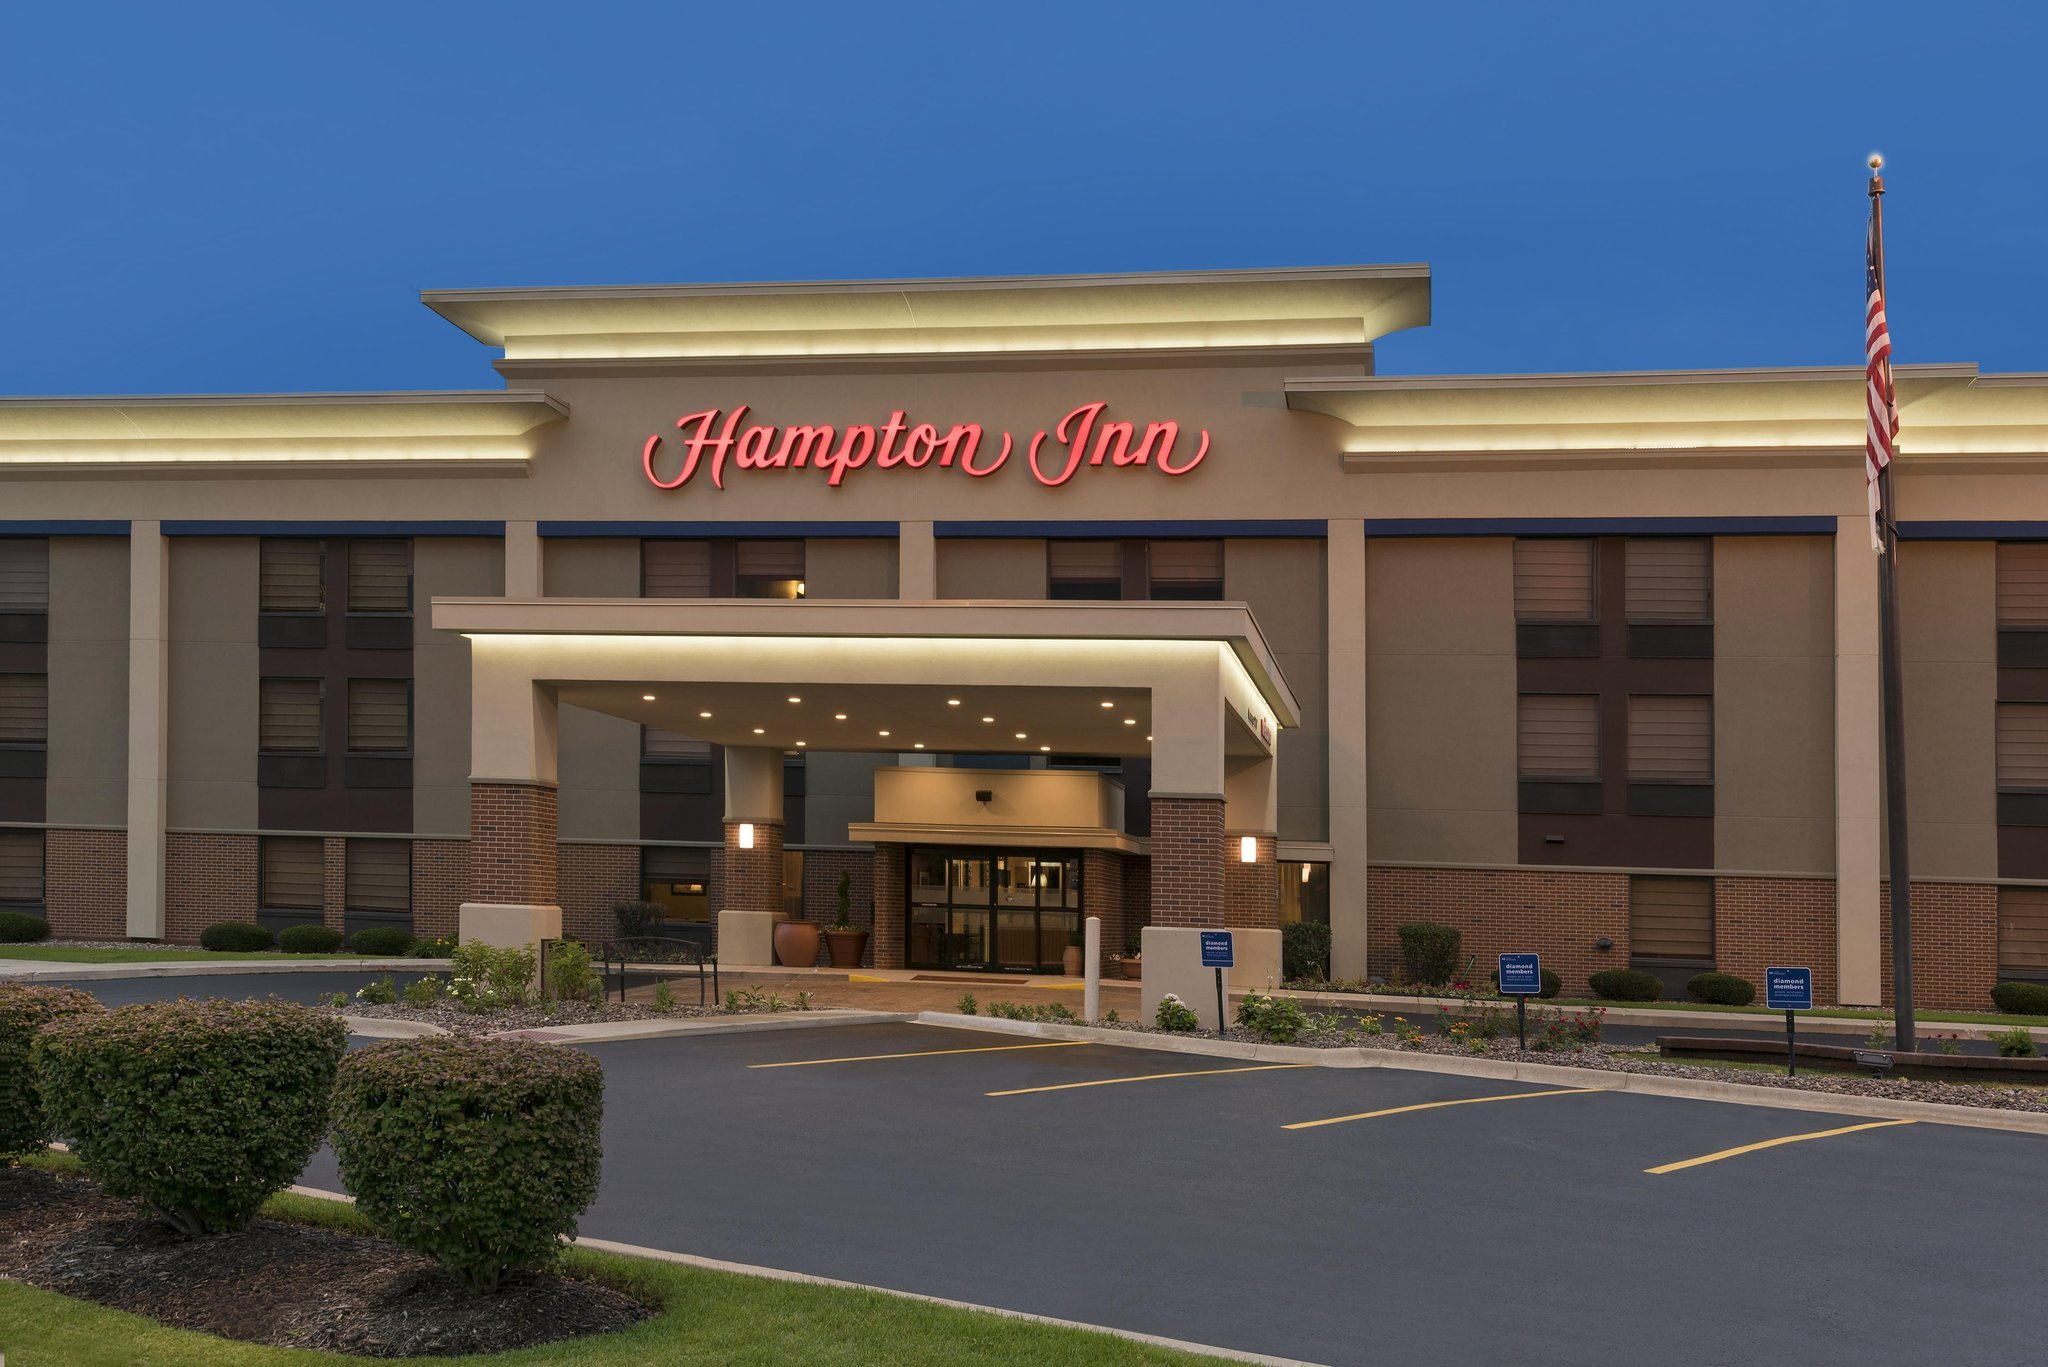 Hampton Inn by Hilton Joliet I-80